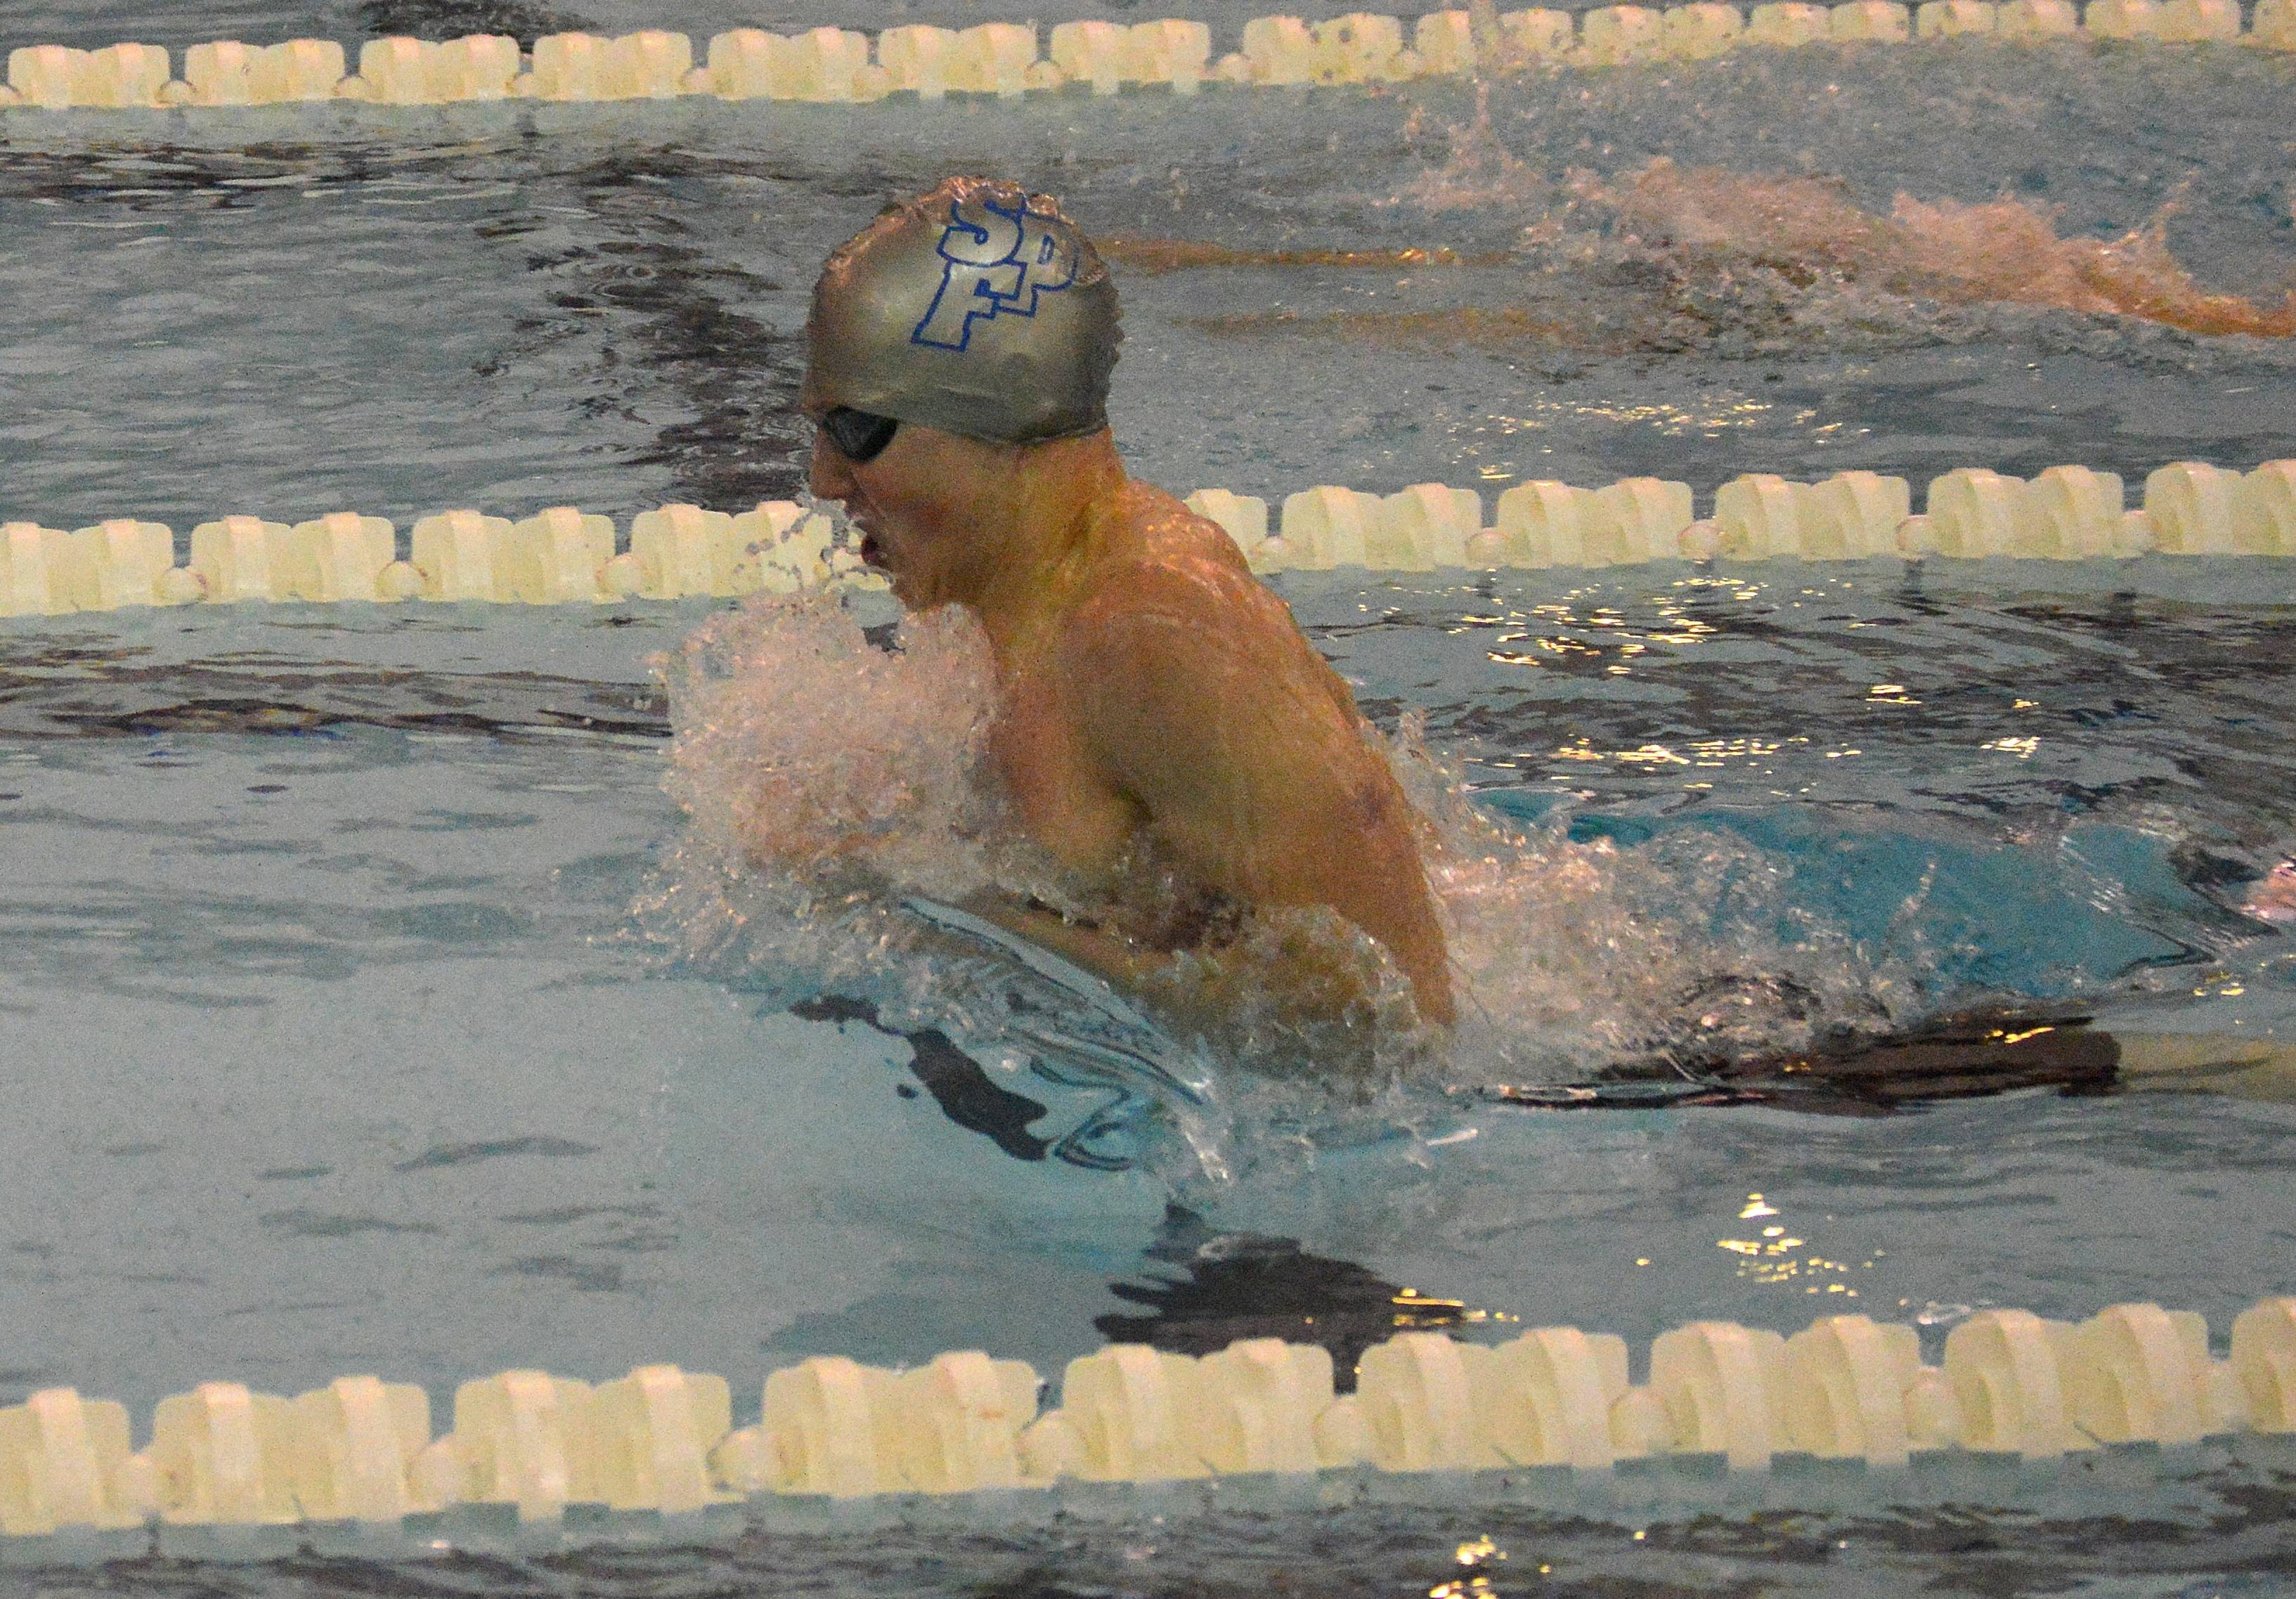 2b4ad0a480f13c3c6b28_1-10-17_Chris_Bondarowicz_in_the_200_Breaststroke.JPG